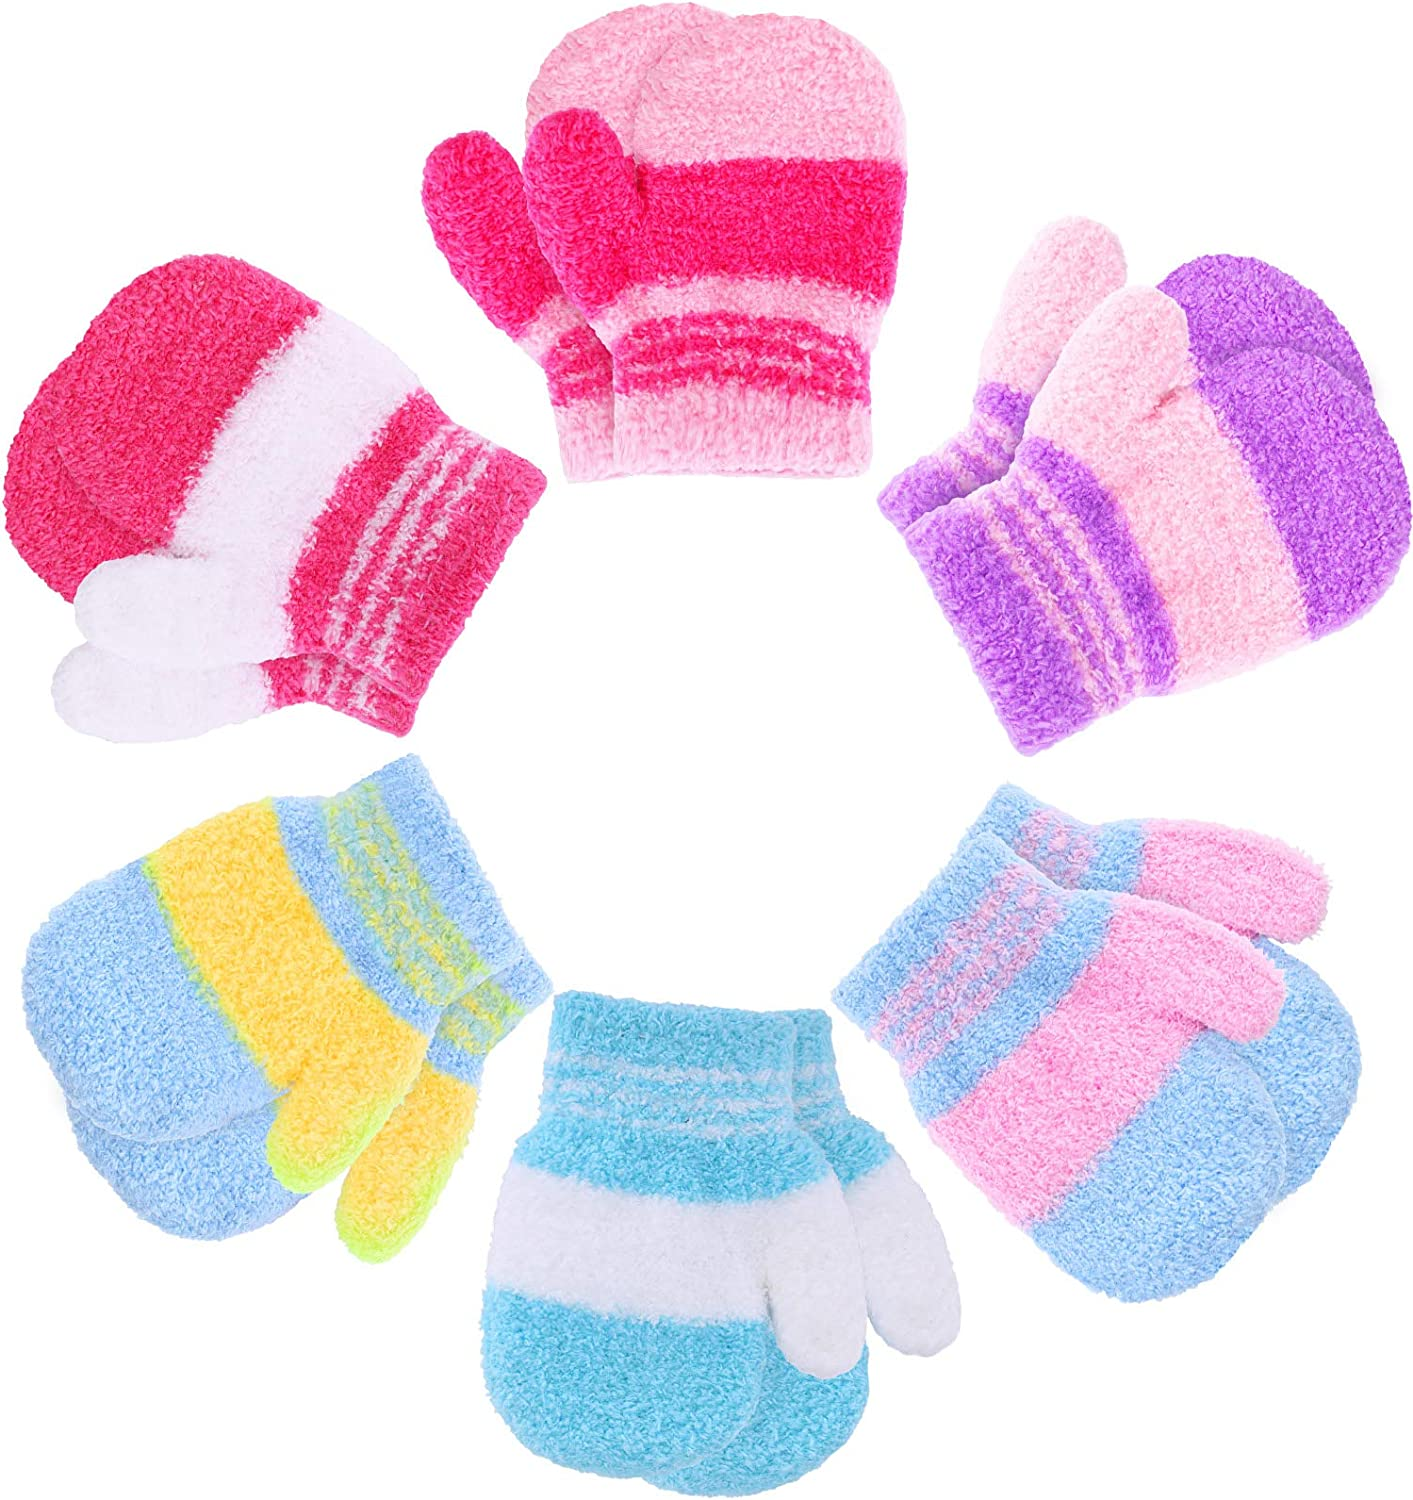 6 Pairs Toddler Winter Knitted Gloves Full Finger Mittens Baby Soft Fluffy Gloves (1-3 Years Size)